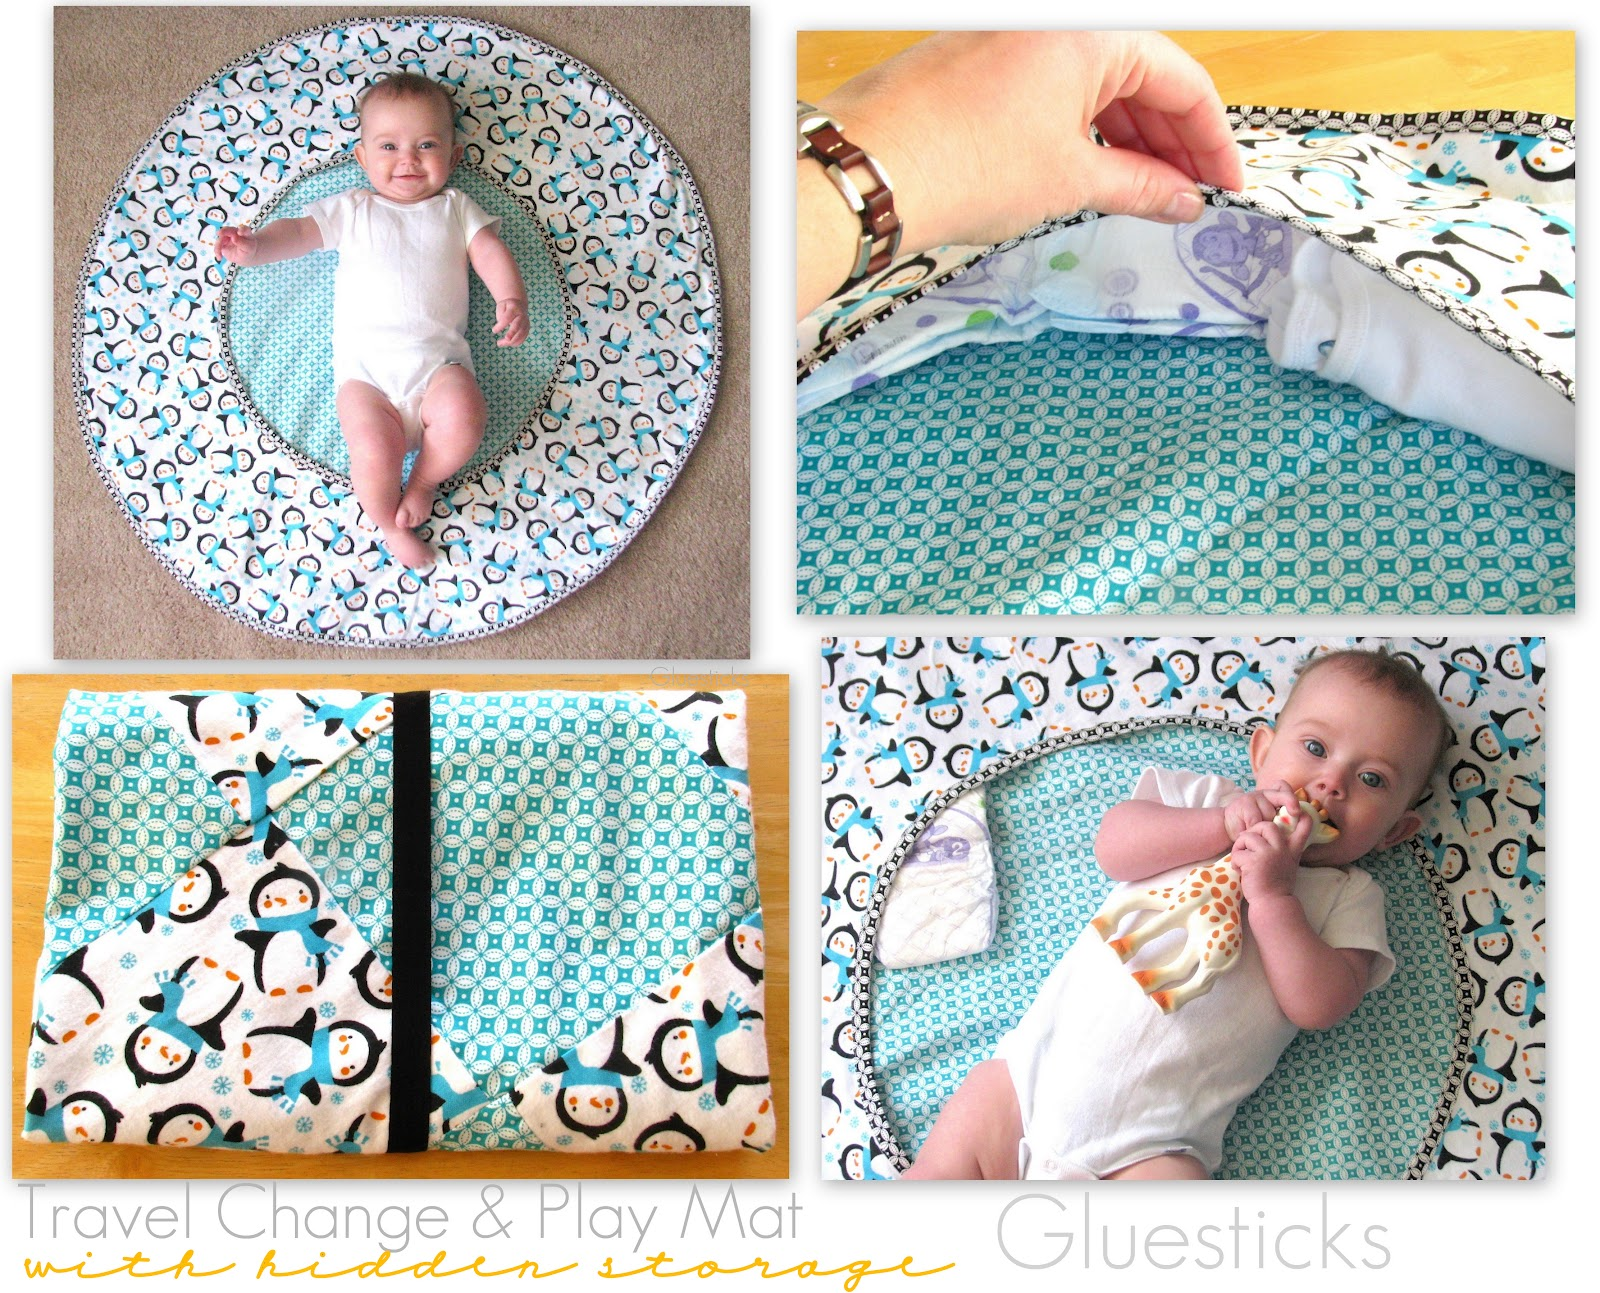 Travel Diaper Changing and Playtime Mat Tutorial | Gluesticks